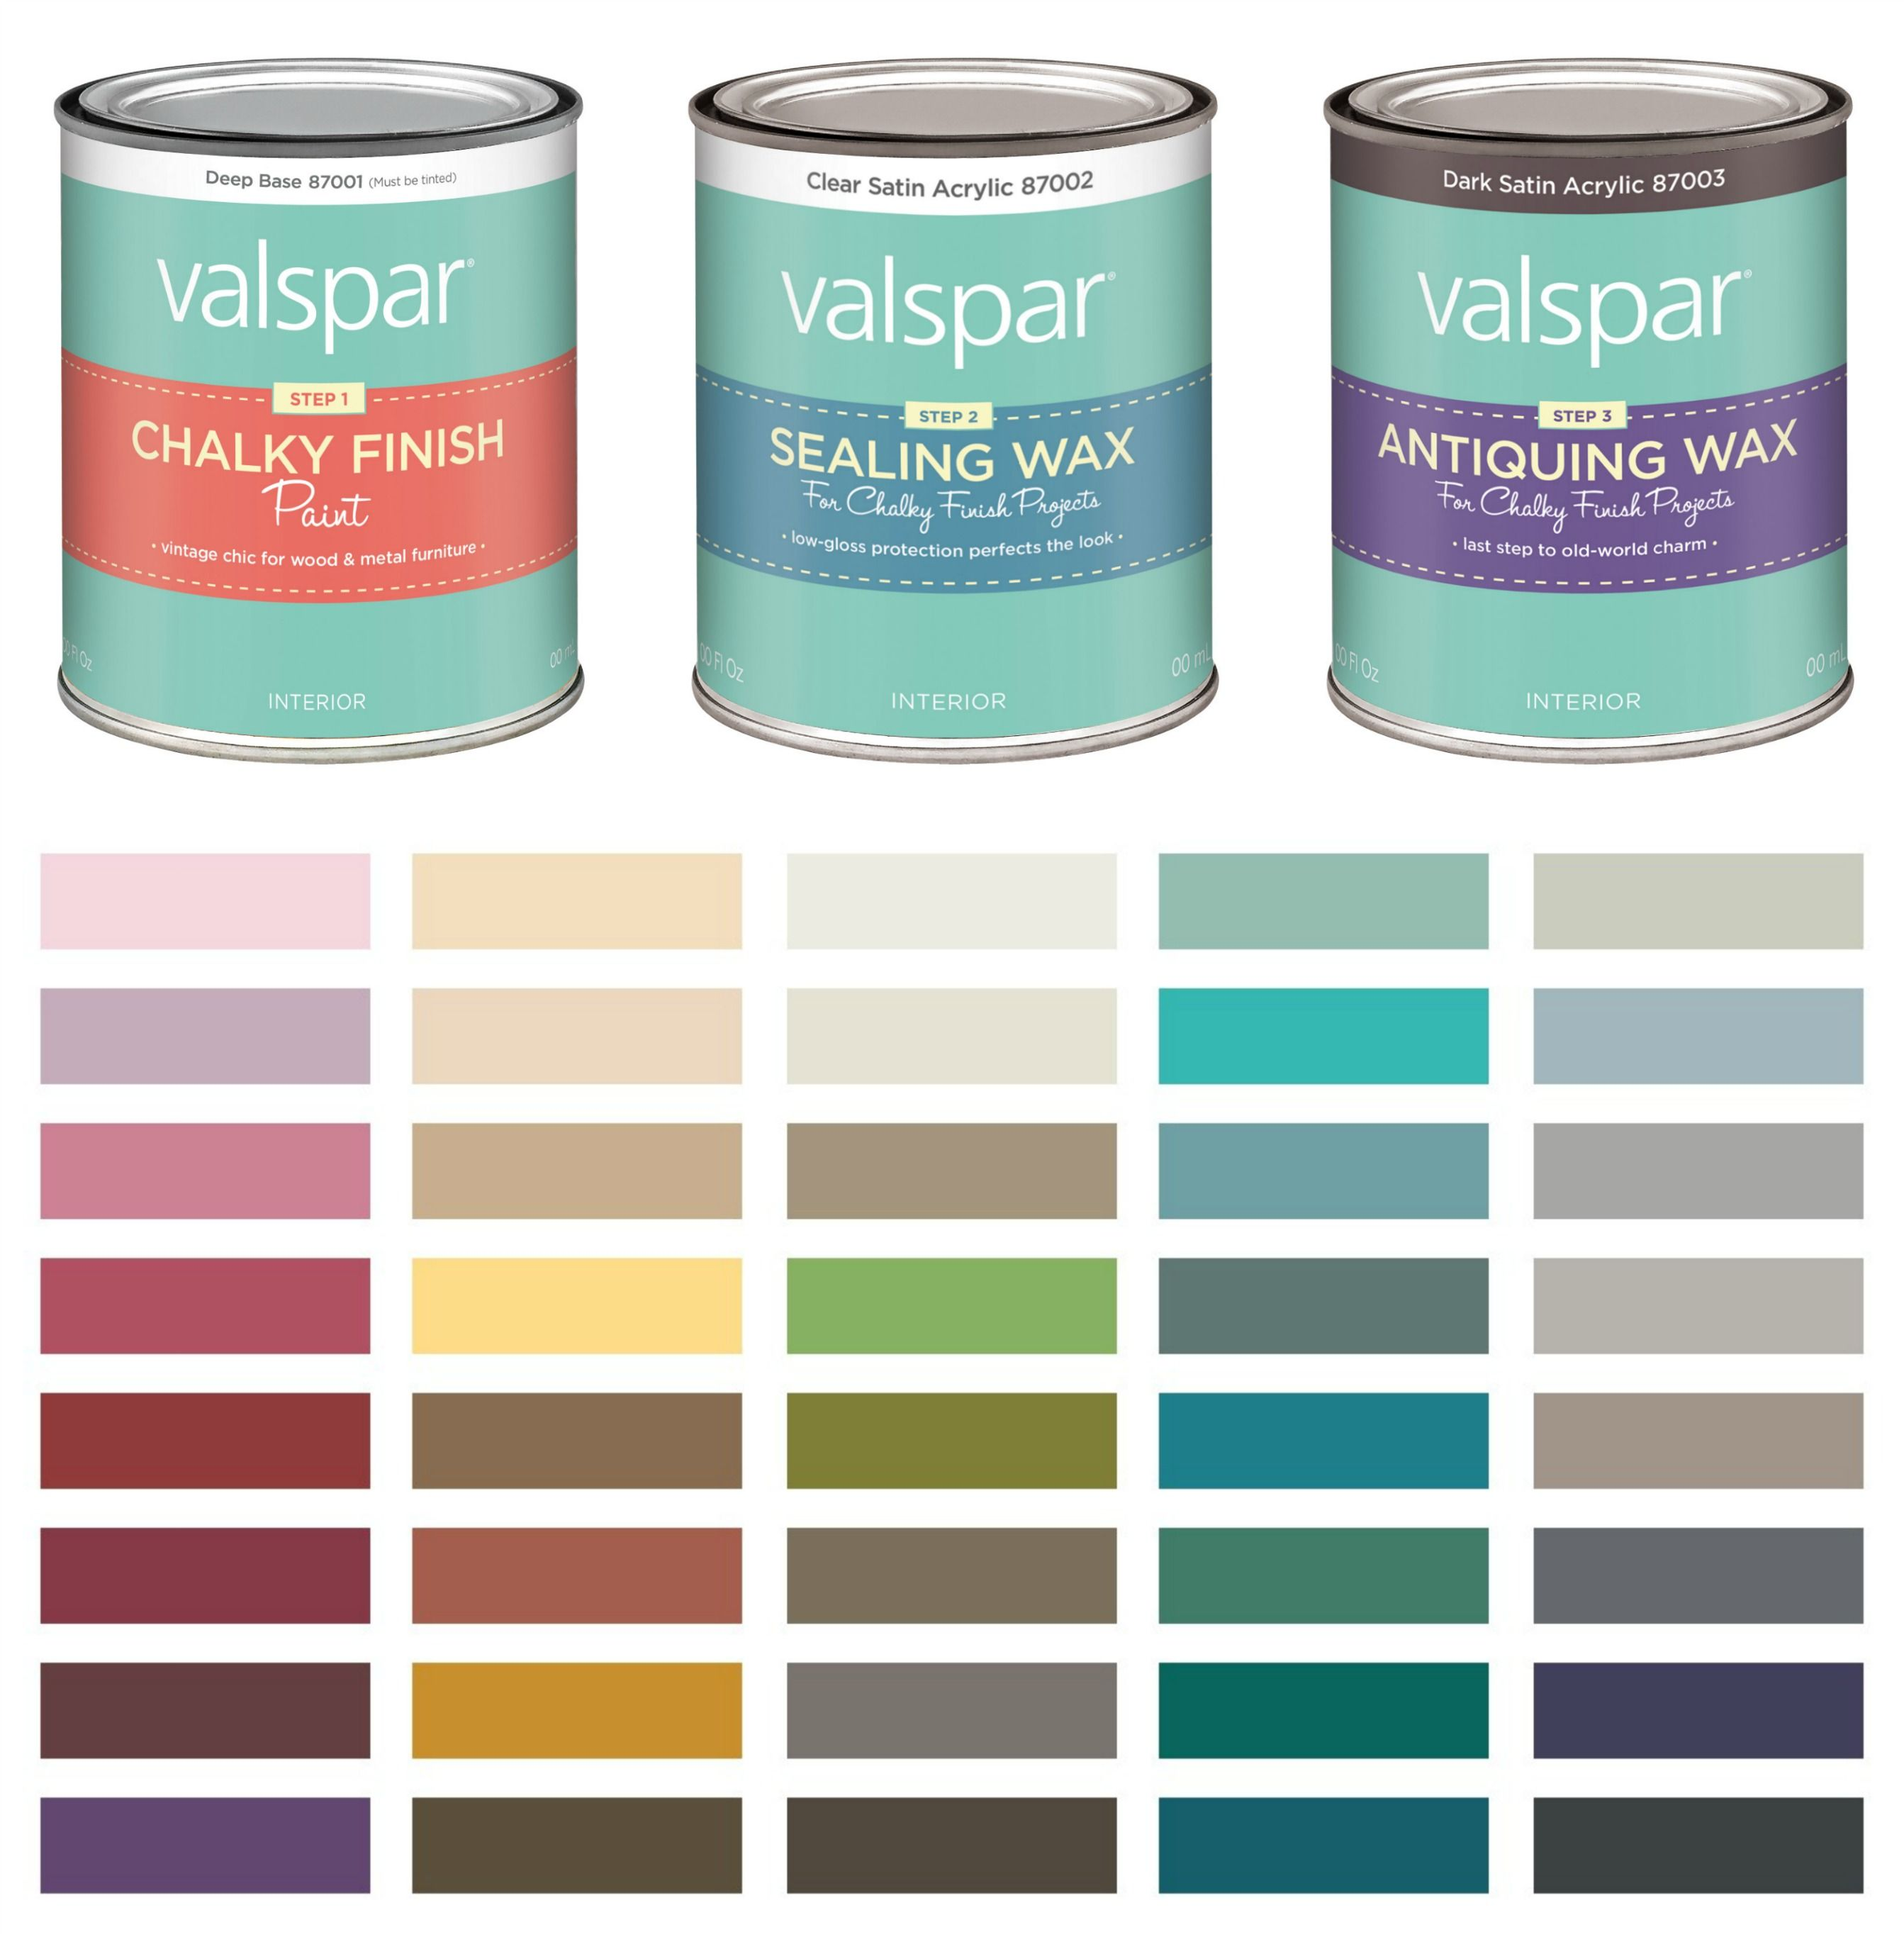 Stencil paint 4 ounces plum amazon ca home amp kitchen - Chalk Paint